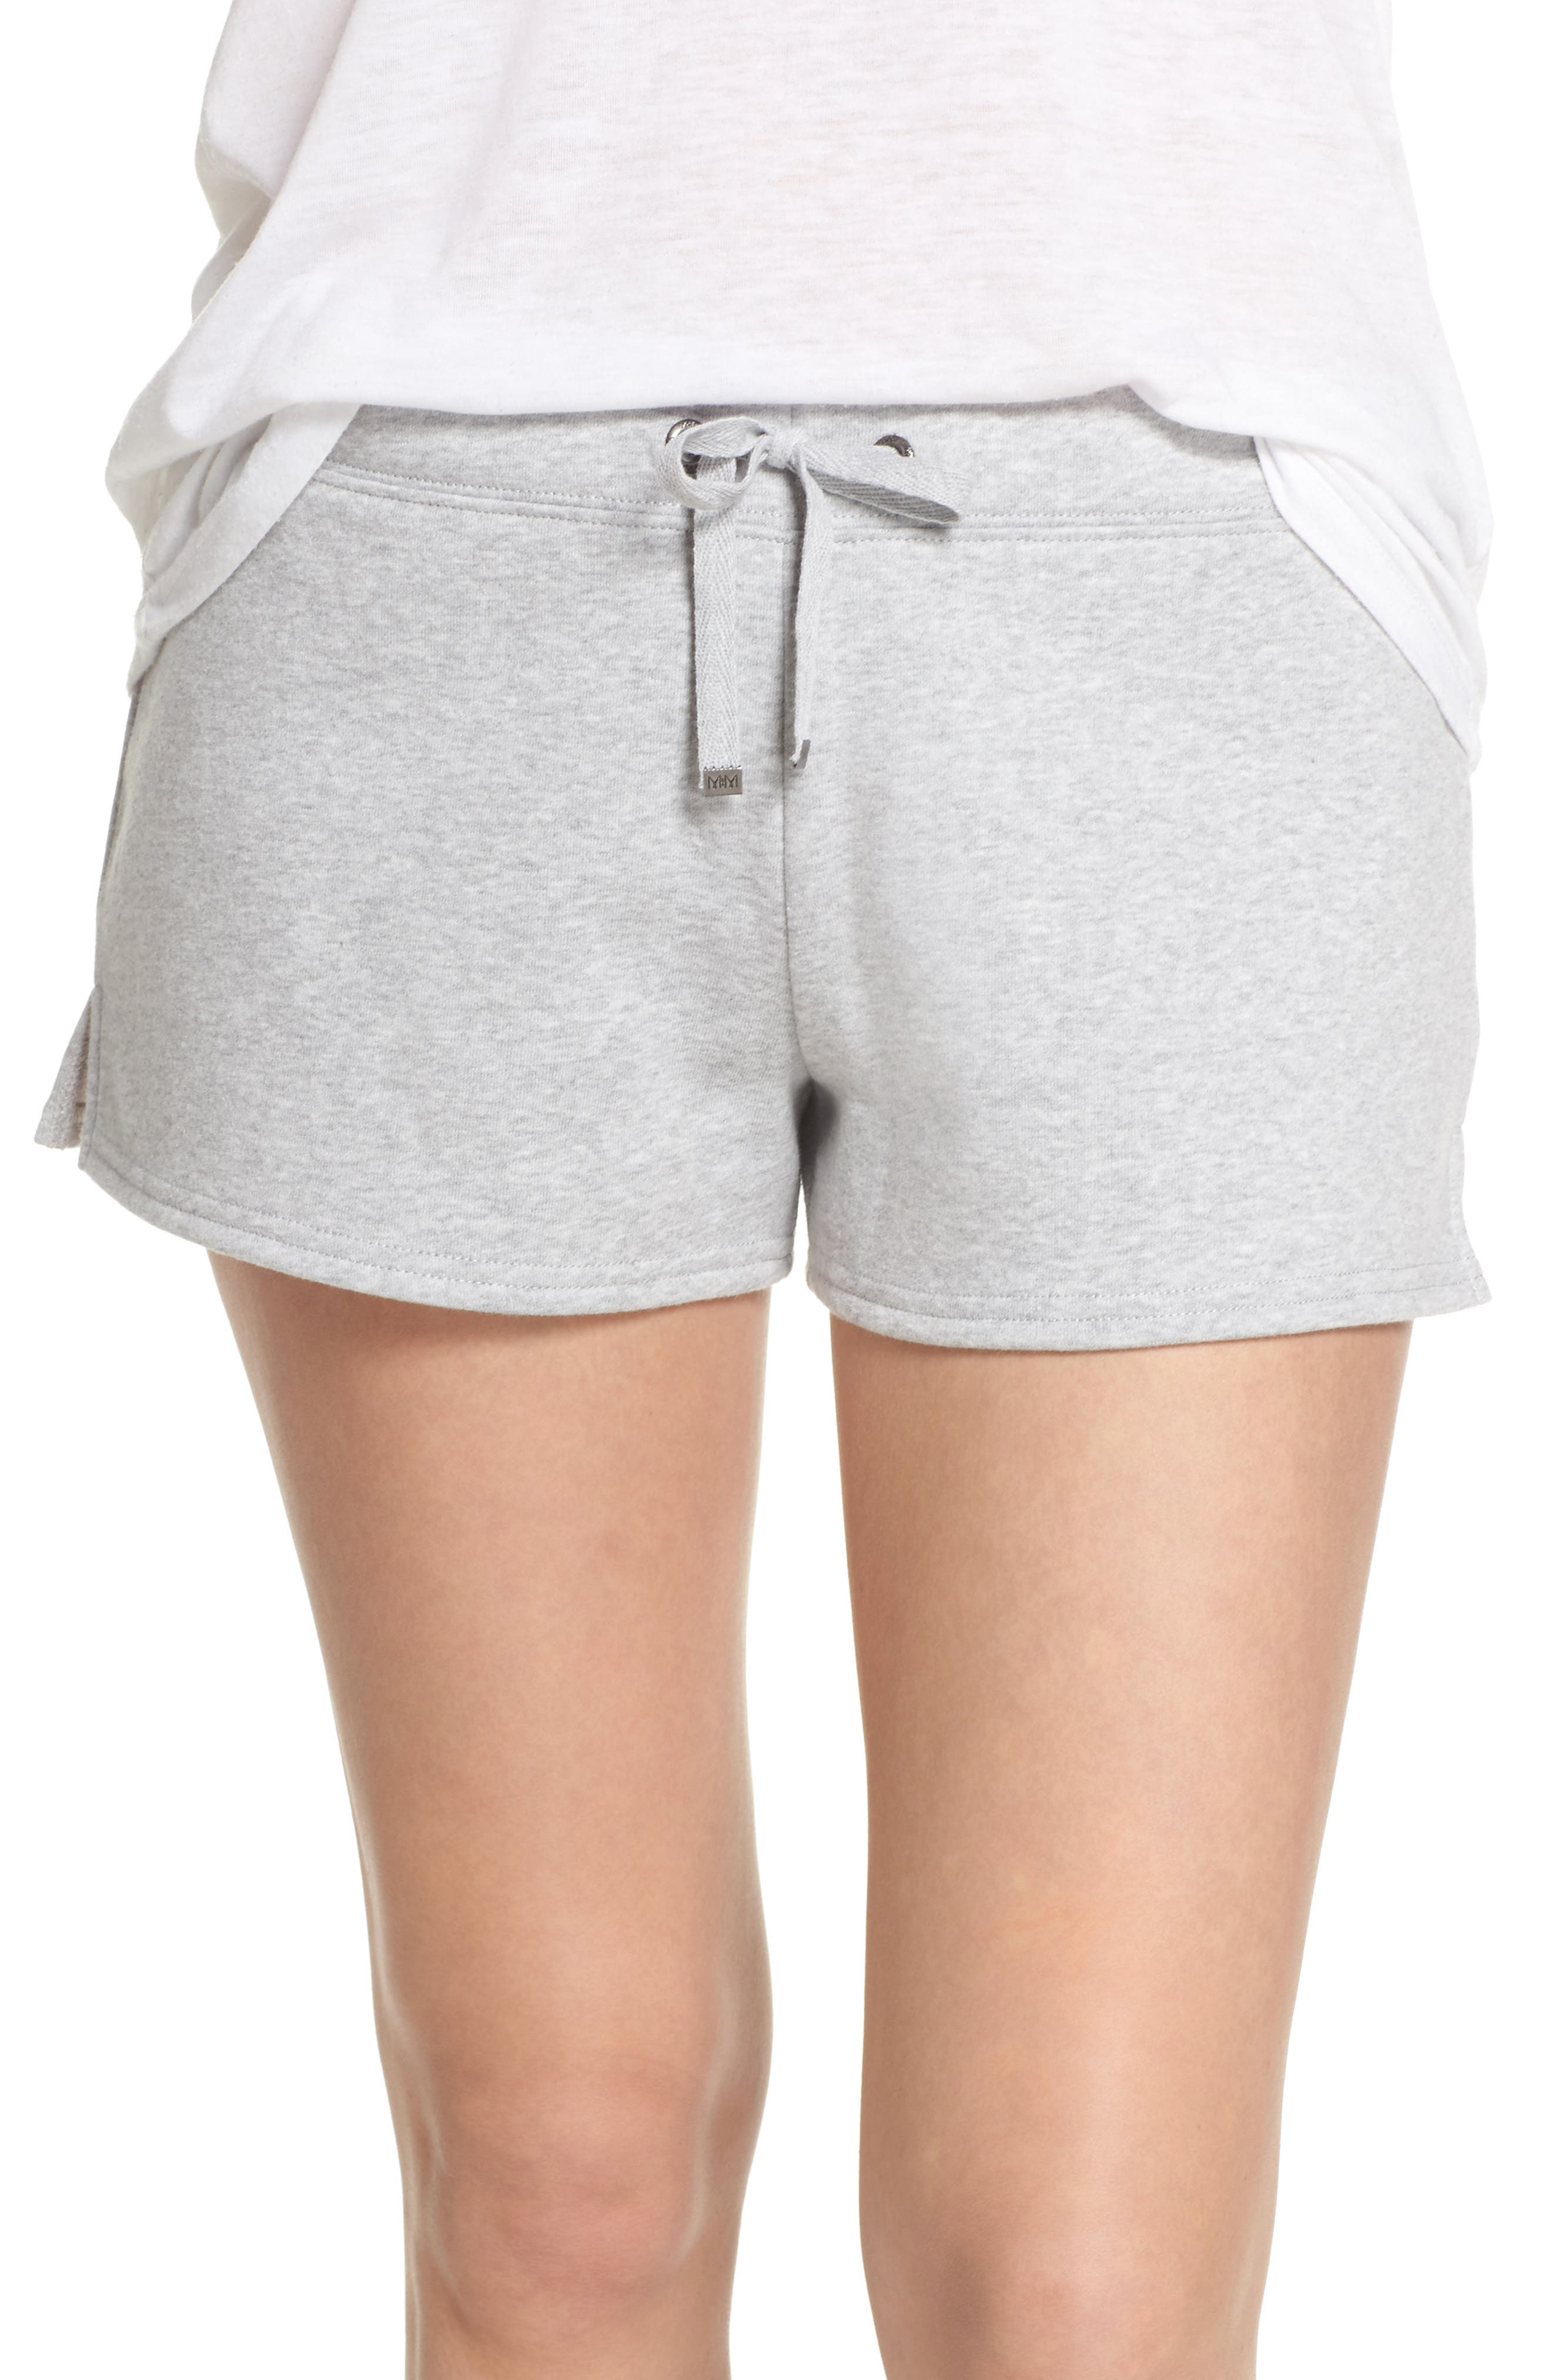 Take It Easy Lounge Shorts,                         Main,                         color, 021